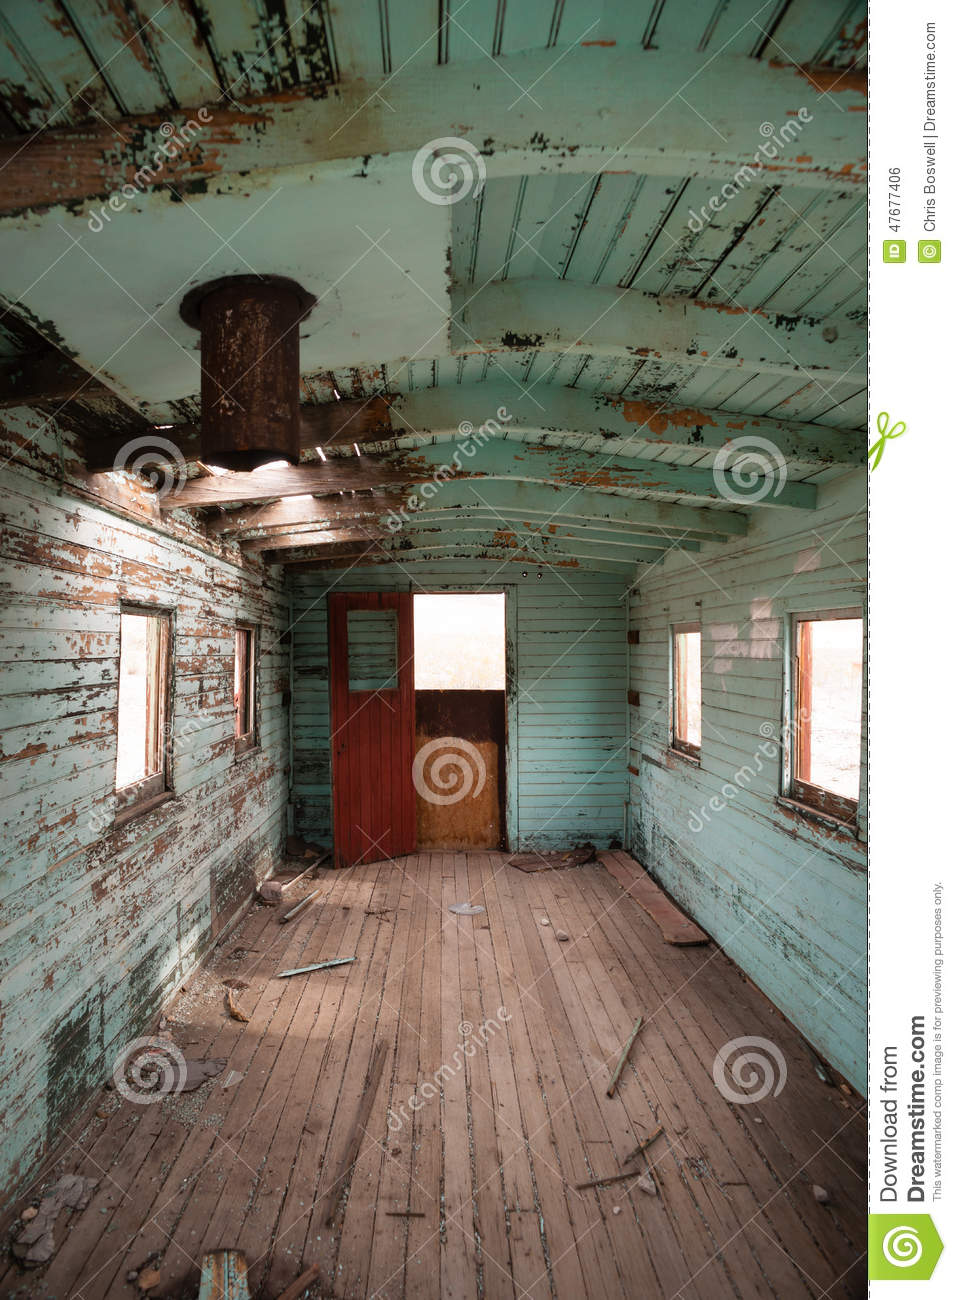 abandoned railroad caboose interior western ghost town stock photo image 47677406. Black Bedroom Furniture Sets. Home Design Ideas